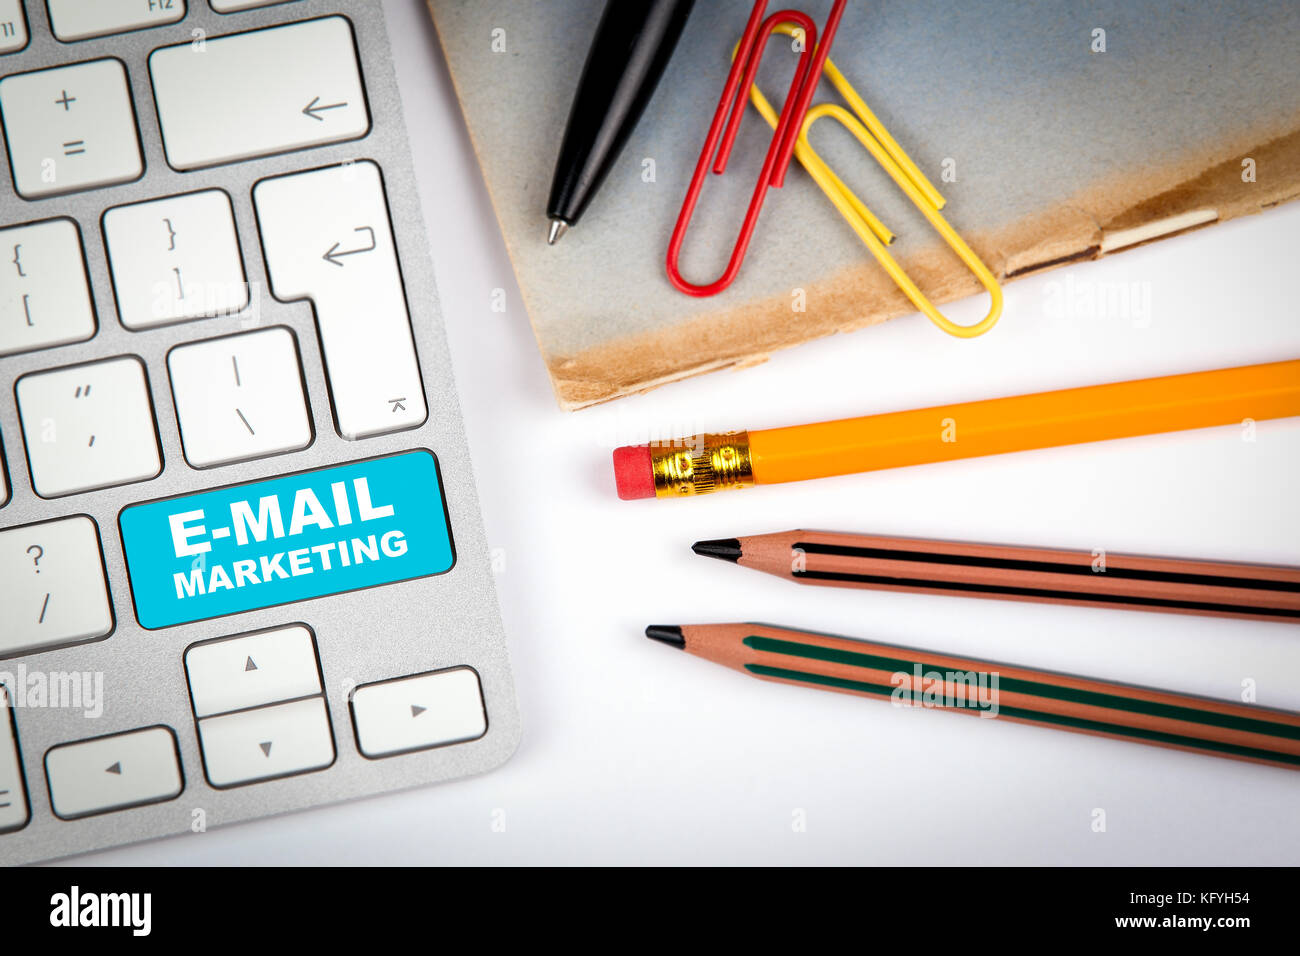 E-Mail Marketing concept. Computer keyboard on a white office desk with various items - Stock Image